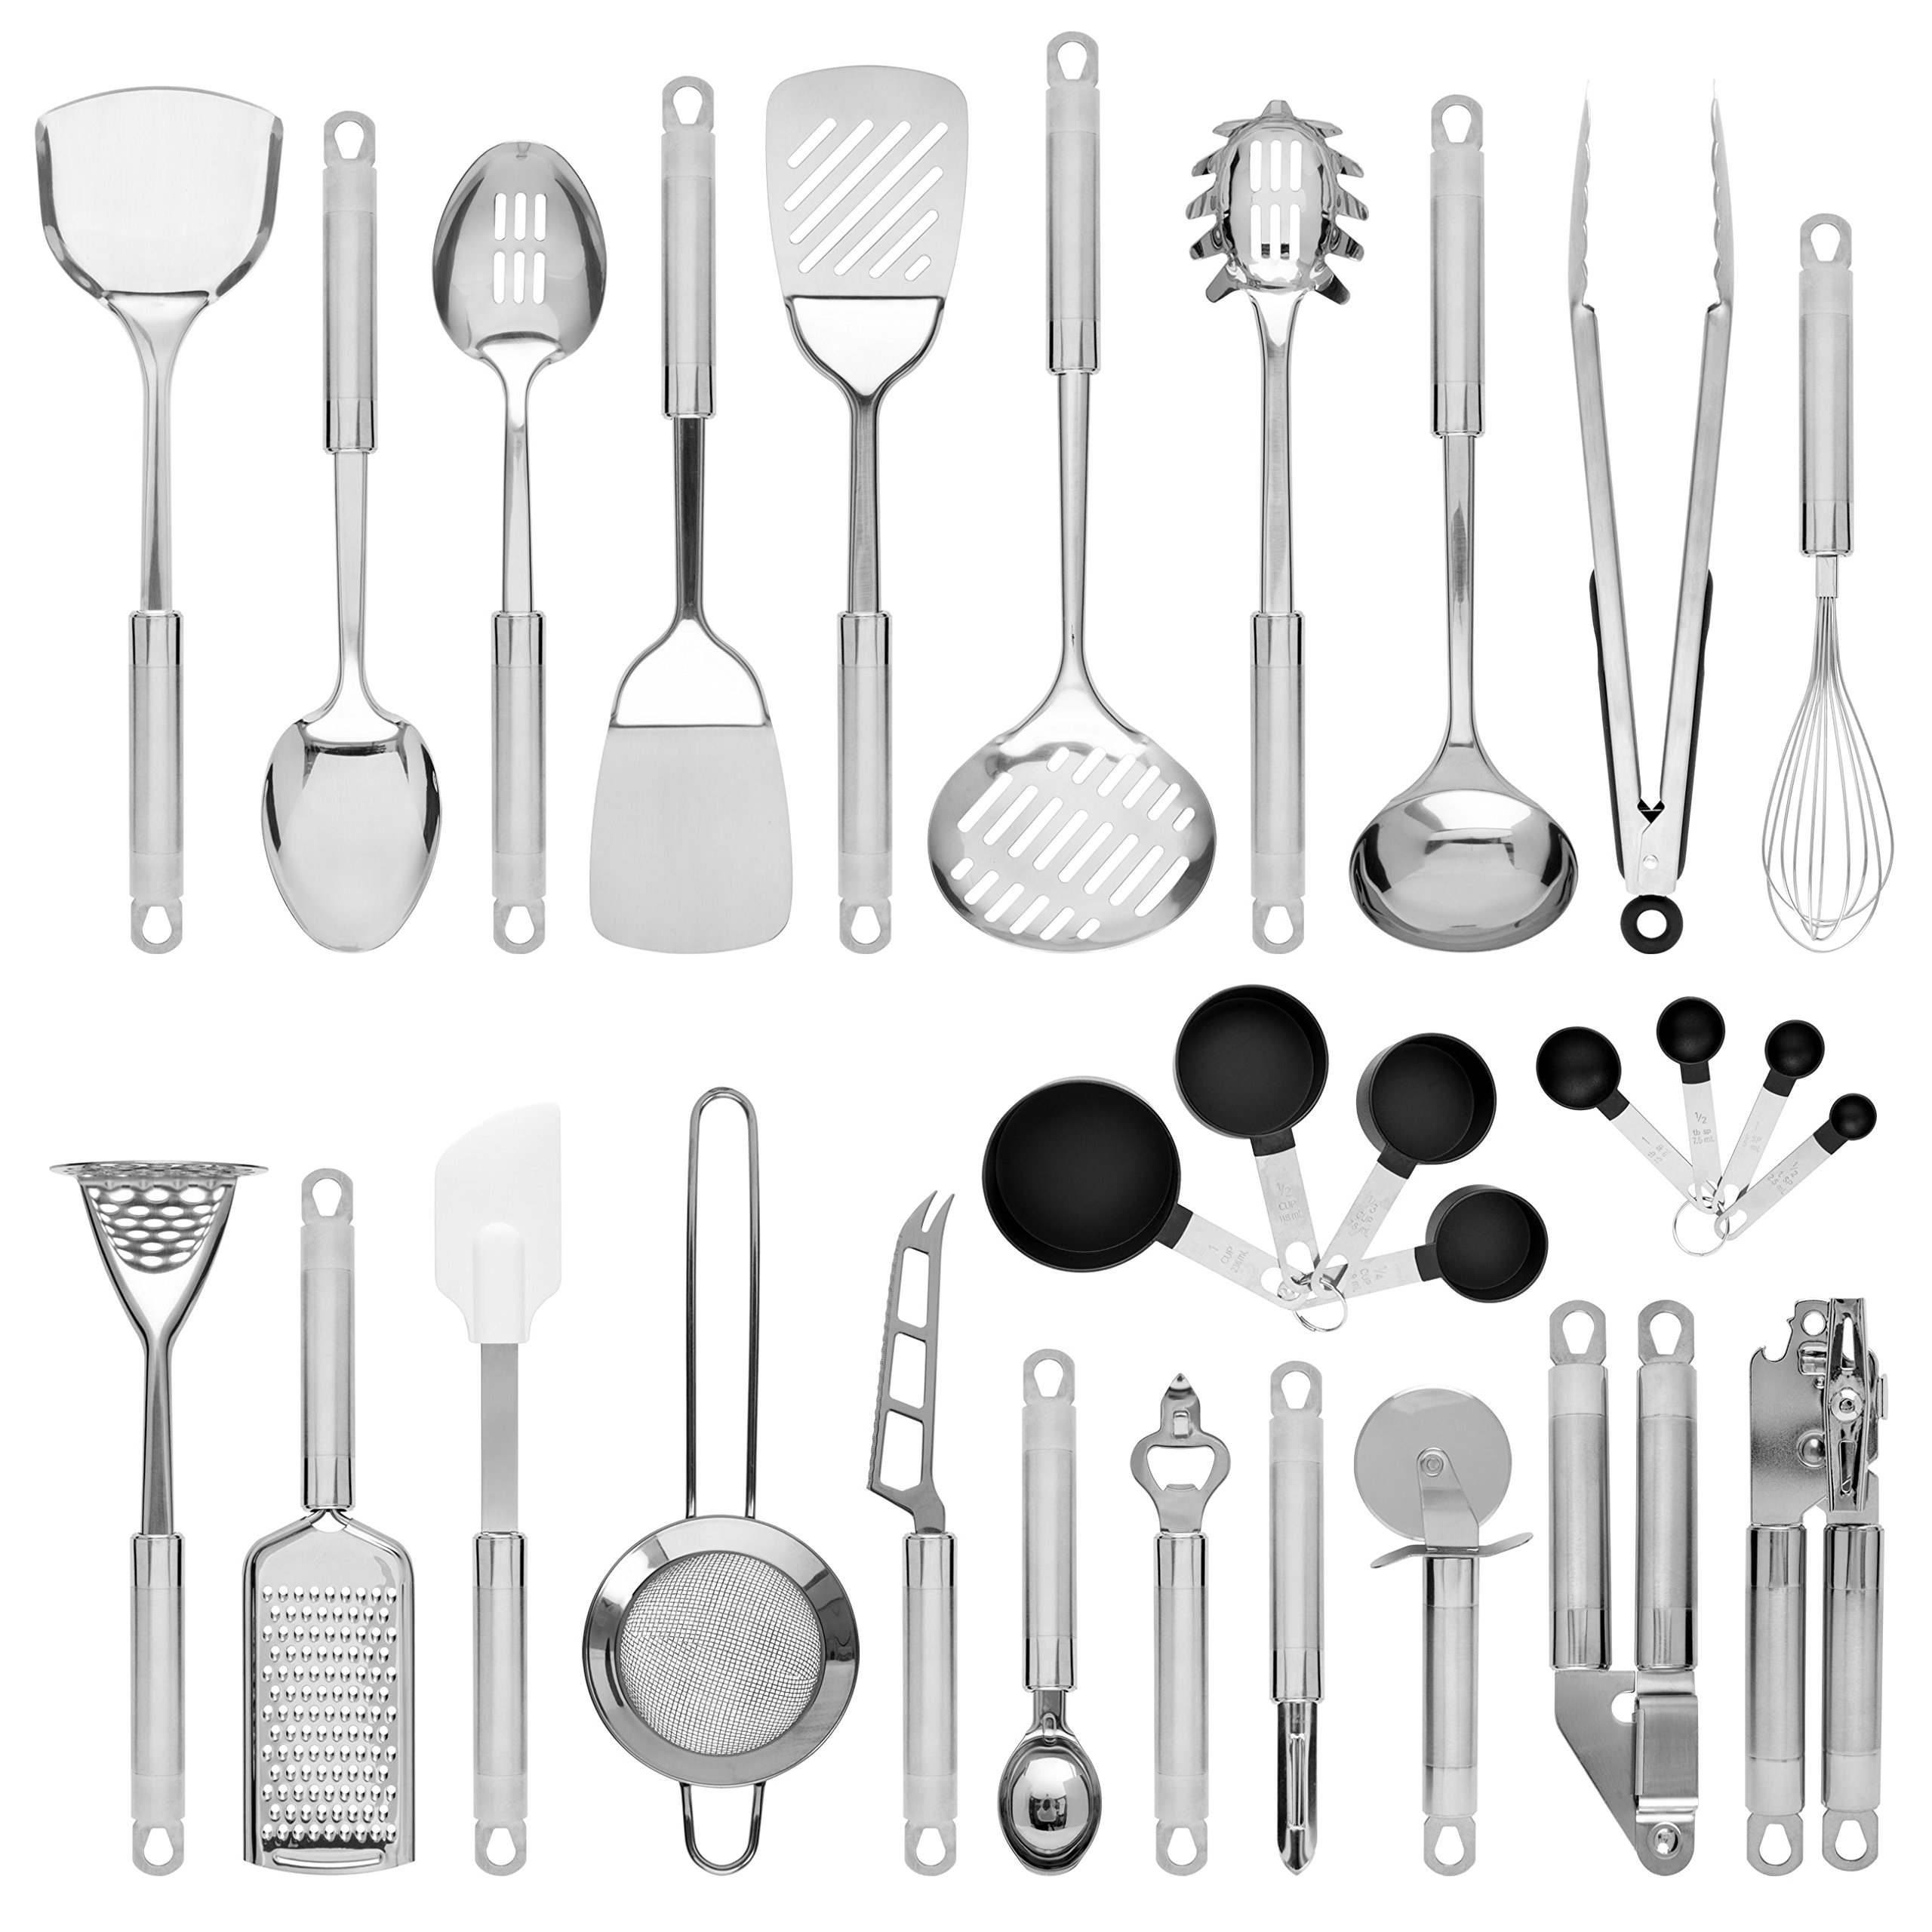 Best Choice Products 29-Piece Stainless Steel Kitchen Cookware Utensils Set w/Spatulas, Can and Bottle Openers, Measuring Cups, Whisk, Ladles, Tongs, Pizza Slicer, Grater, Strainer, Silver by Best Choice Products